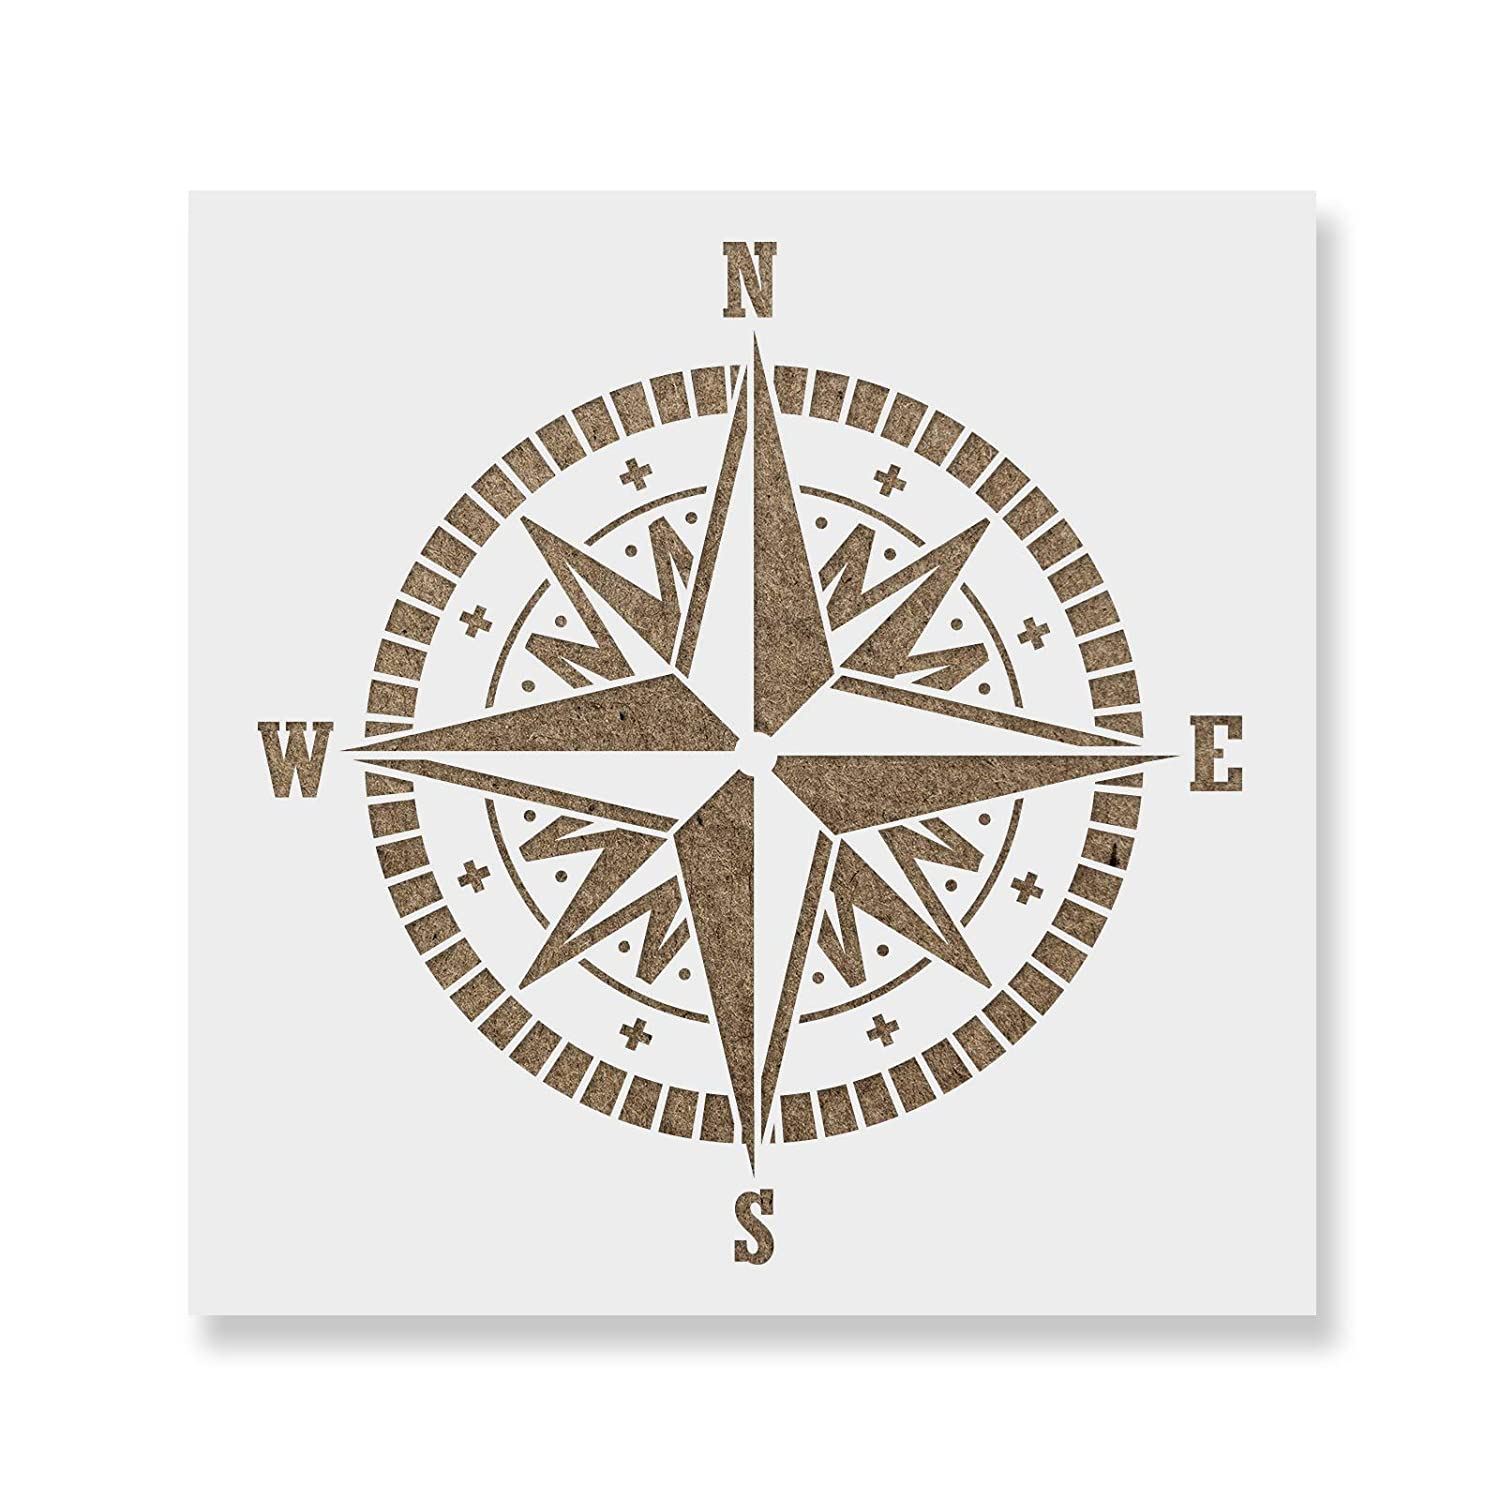 Compass Stencil Template - Reusable Stencil with Multiple Sizes Available Stencil Revolution 4336893196